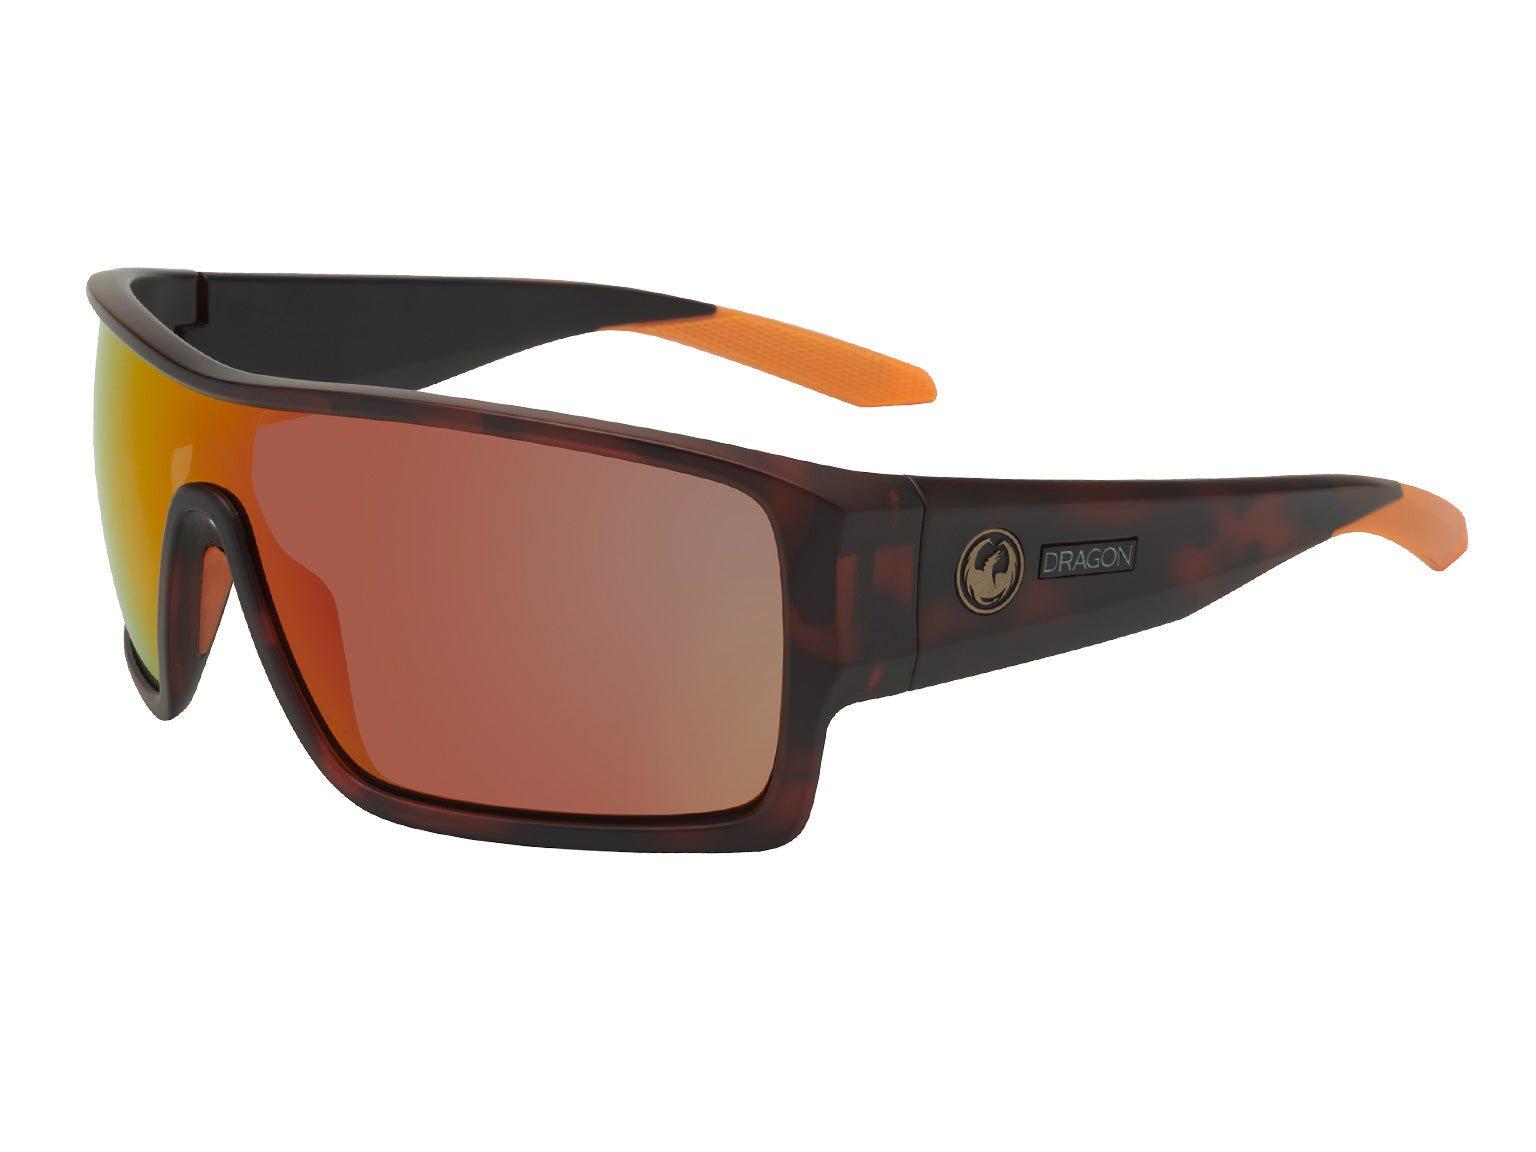 FLASH - Matte Dark Tortoise with Lumalens Orange Ionized Lens